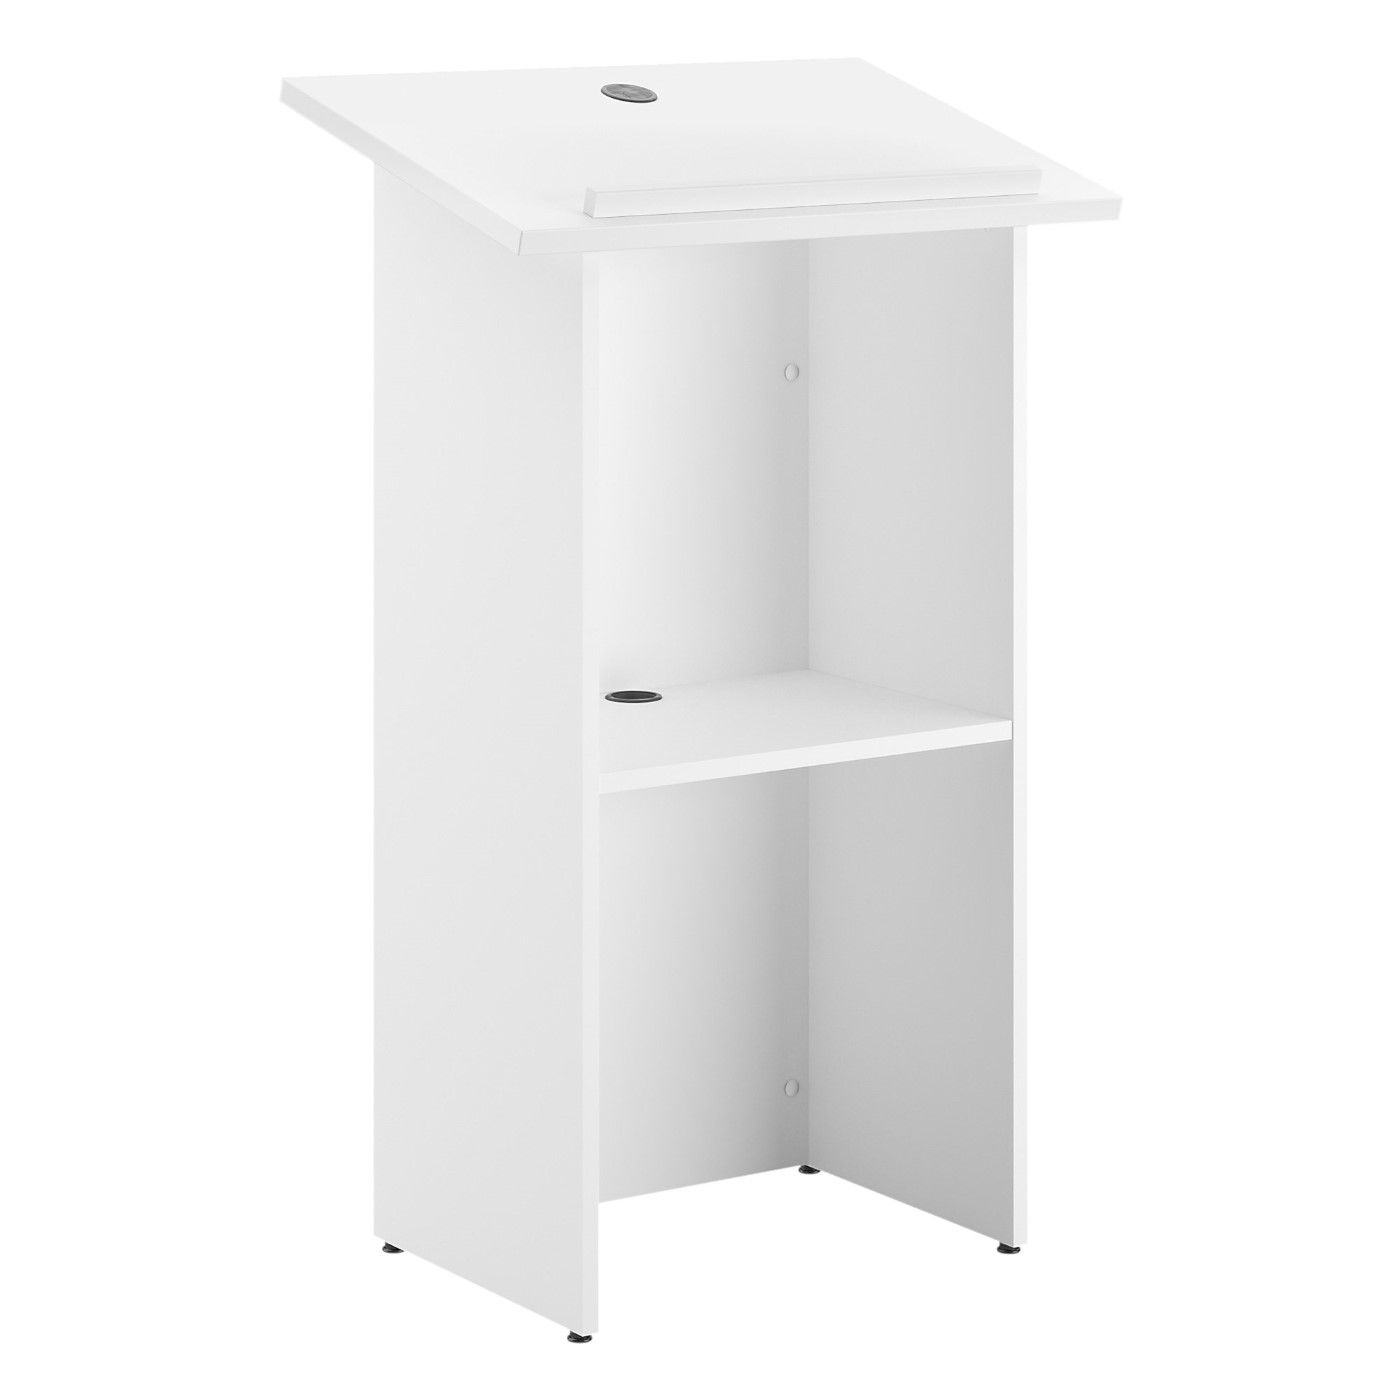 BUSH BUSINESS FURNITURE 24W X 48H LECTERN. FREE SHIPPING SALE DEDUCT 10% MORE ENTER '10percent' IN COUPON CODE BOX WHILE CHECKING OUT. ENDS 5-31-20.